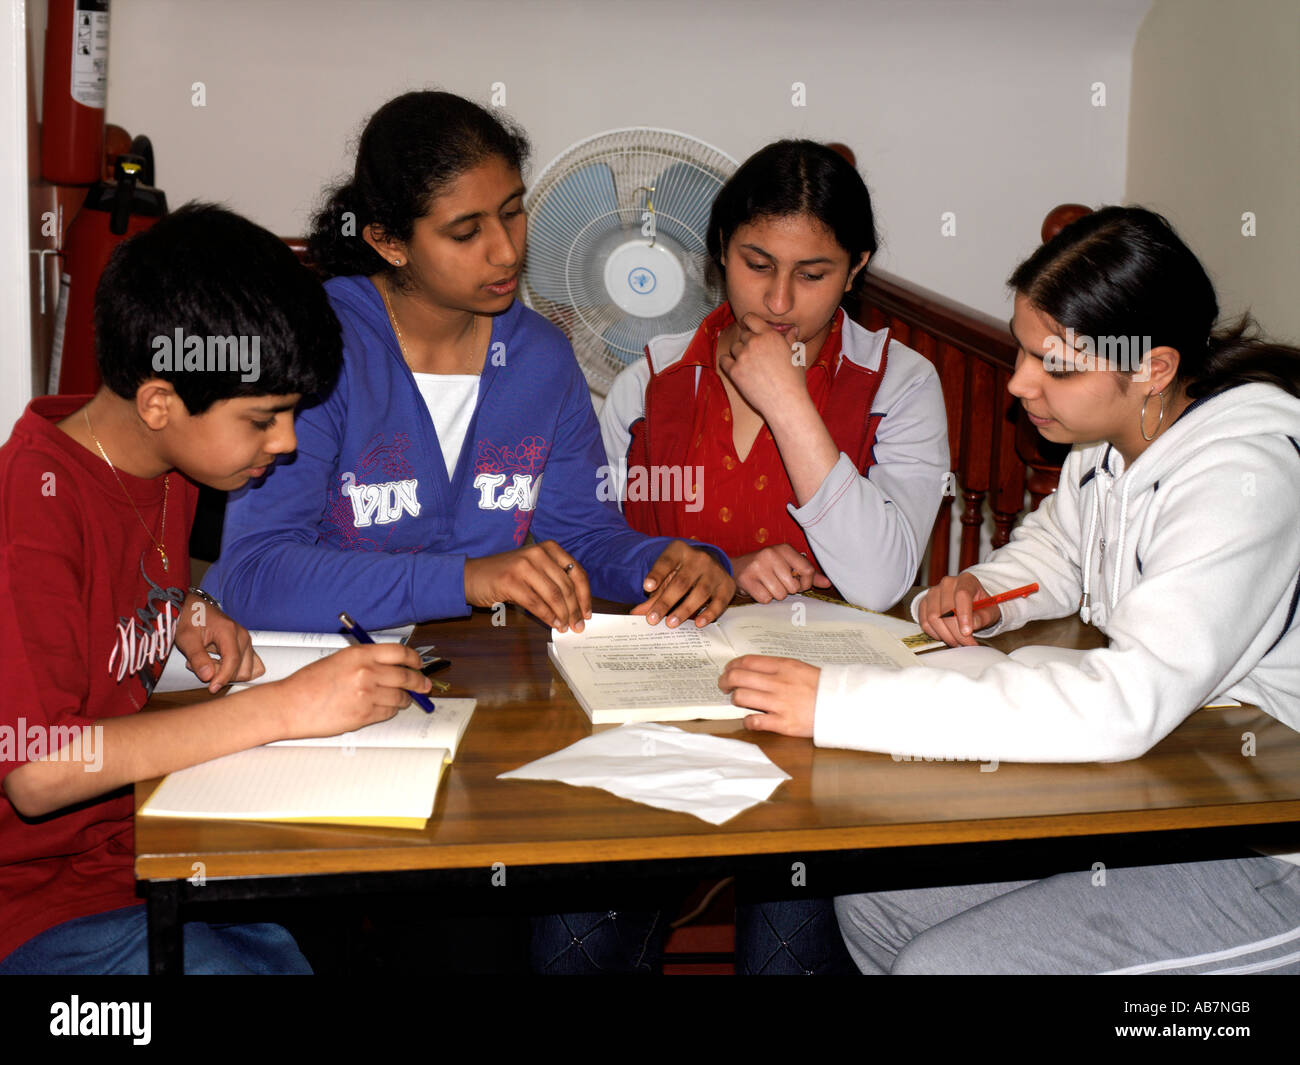 Hindu Centre Wimbledon London England Hindu School Children ...